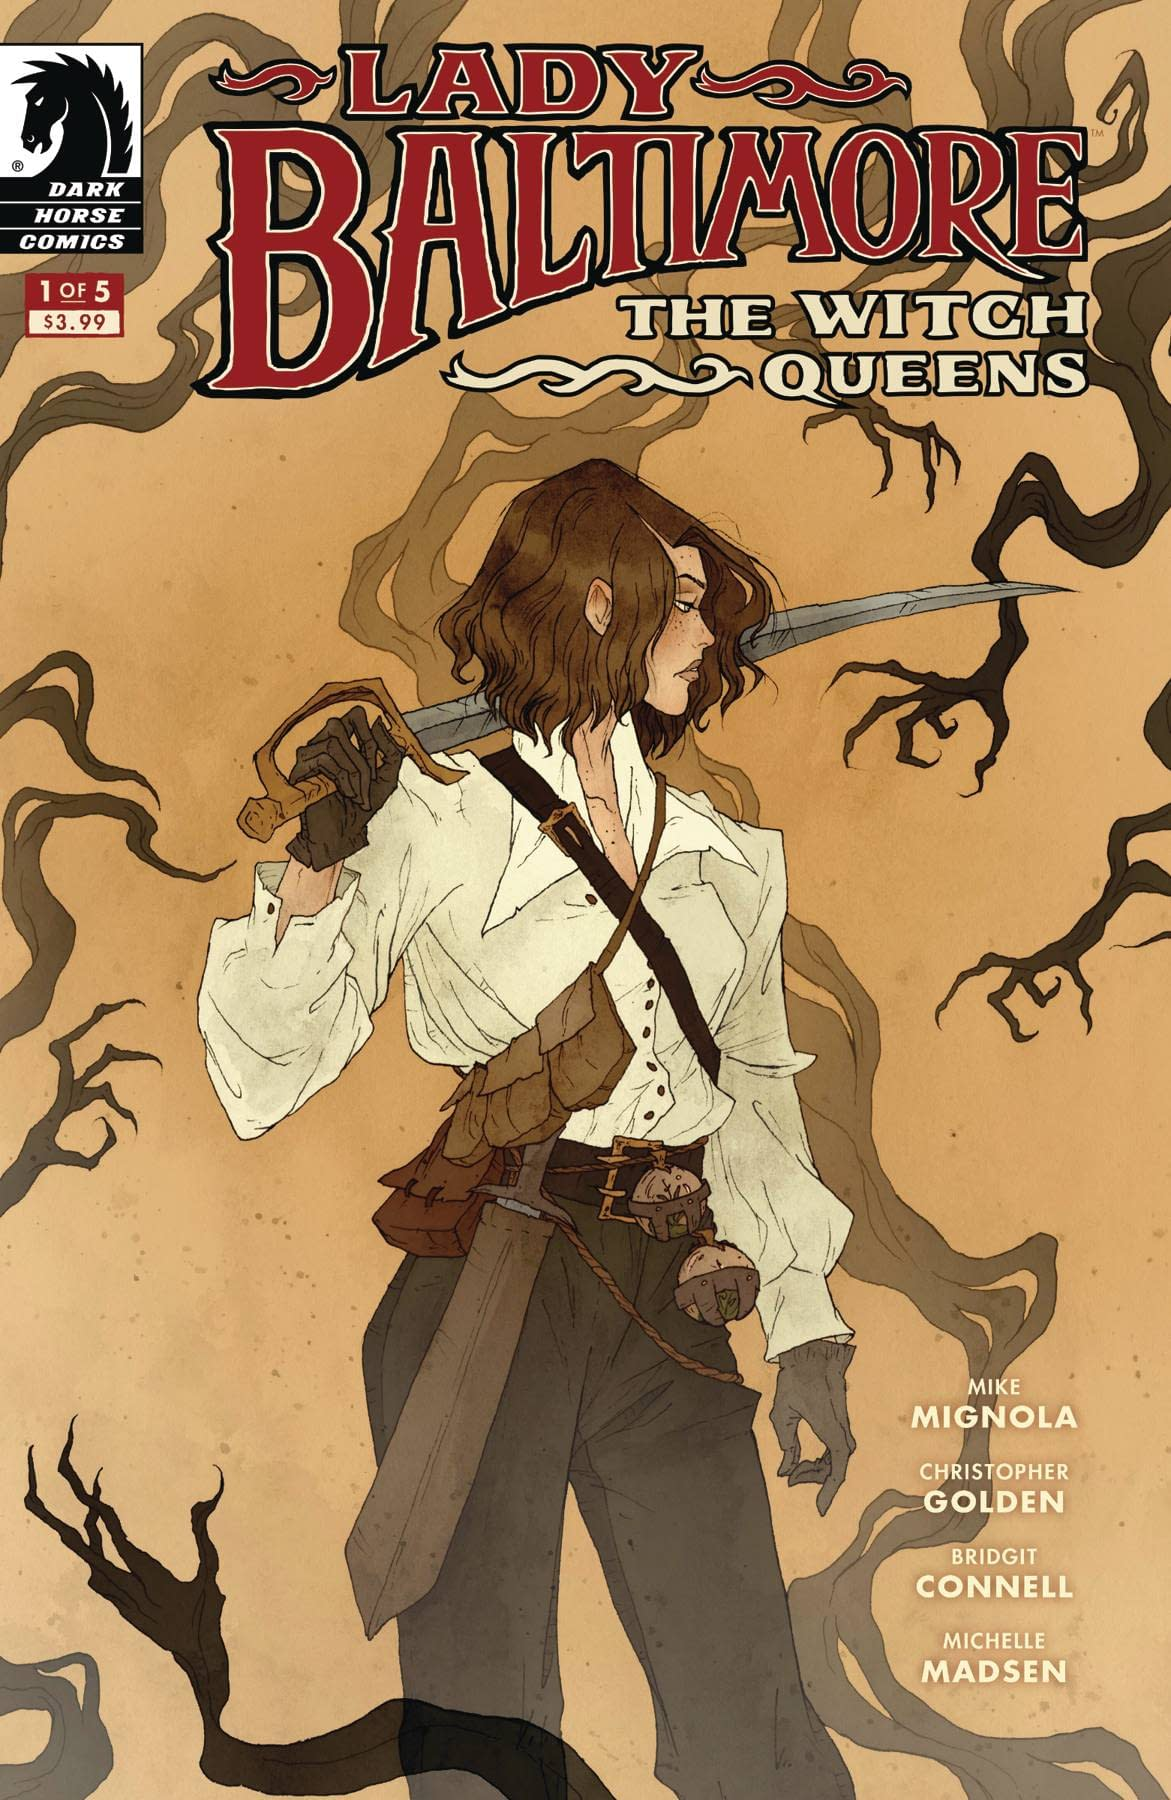 LADY BALTIMORE WITCH QUEENS #1 (OF 5) (RES)